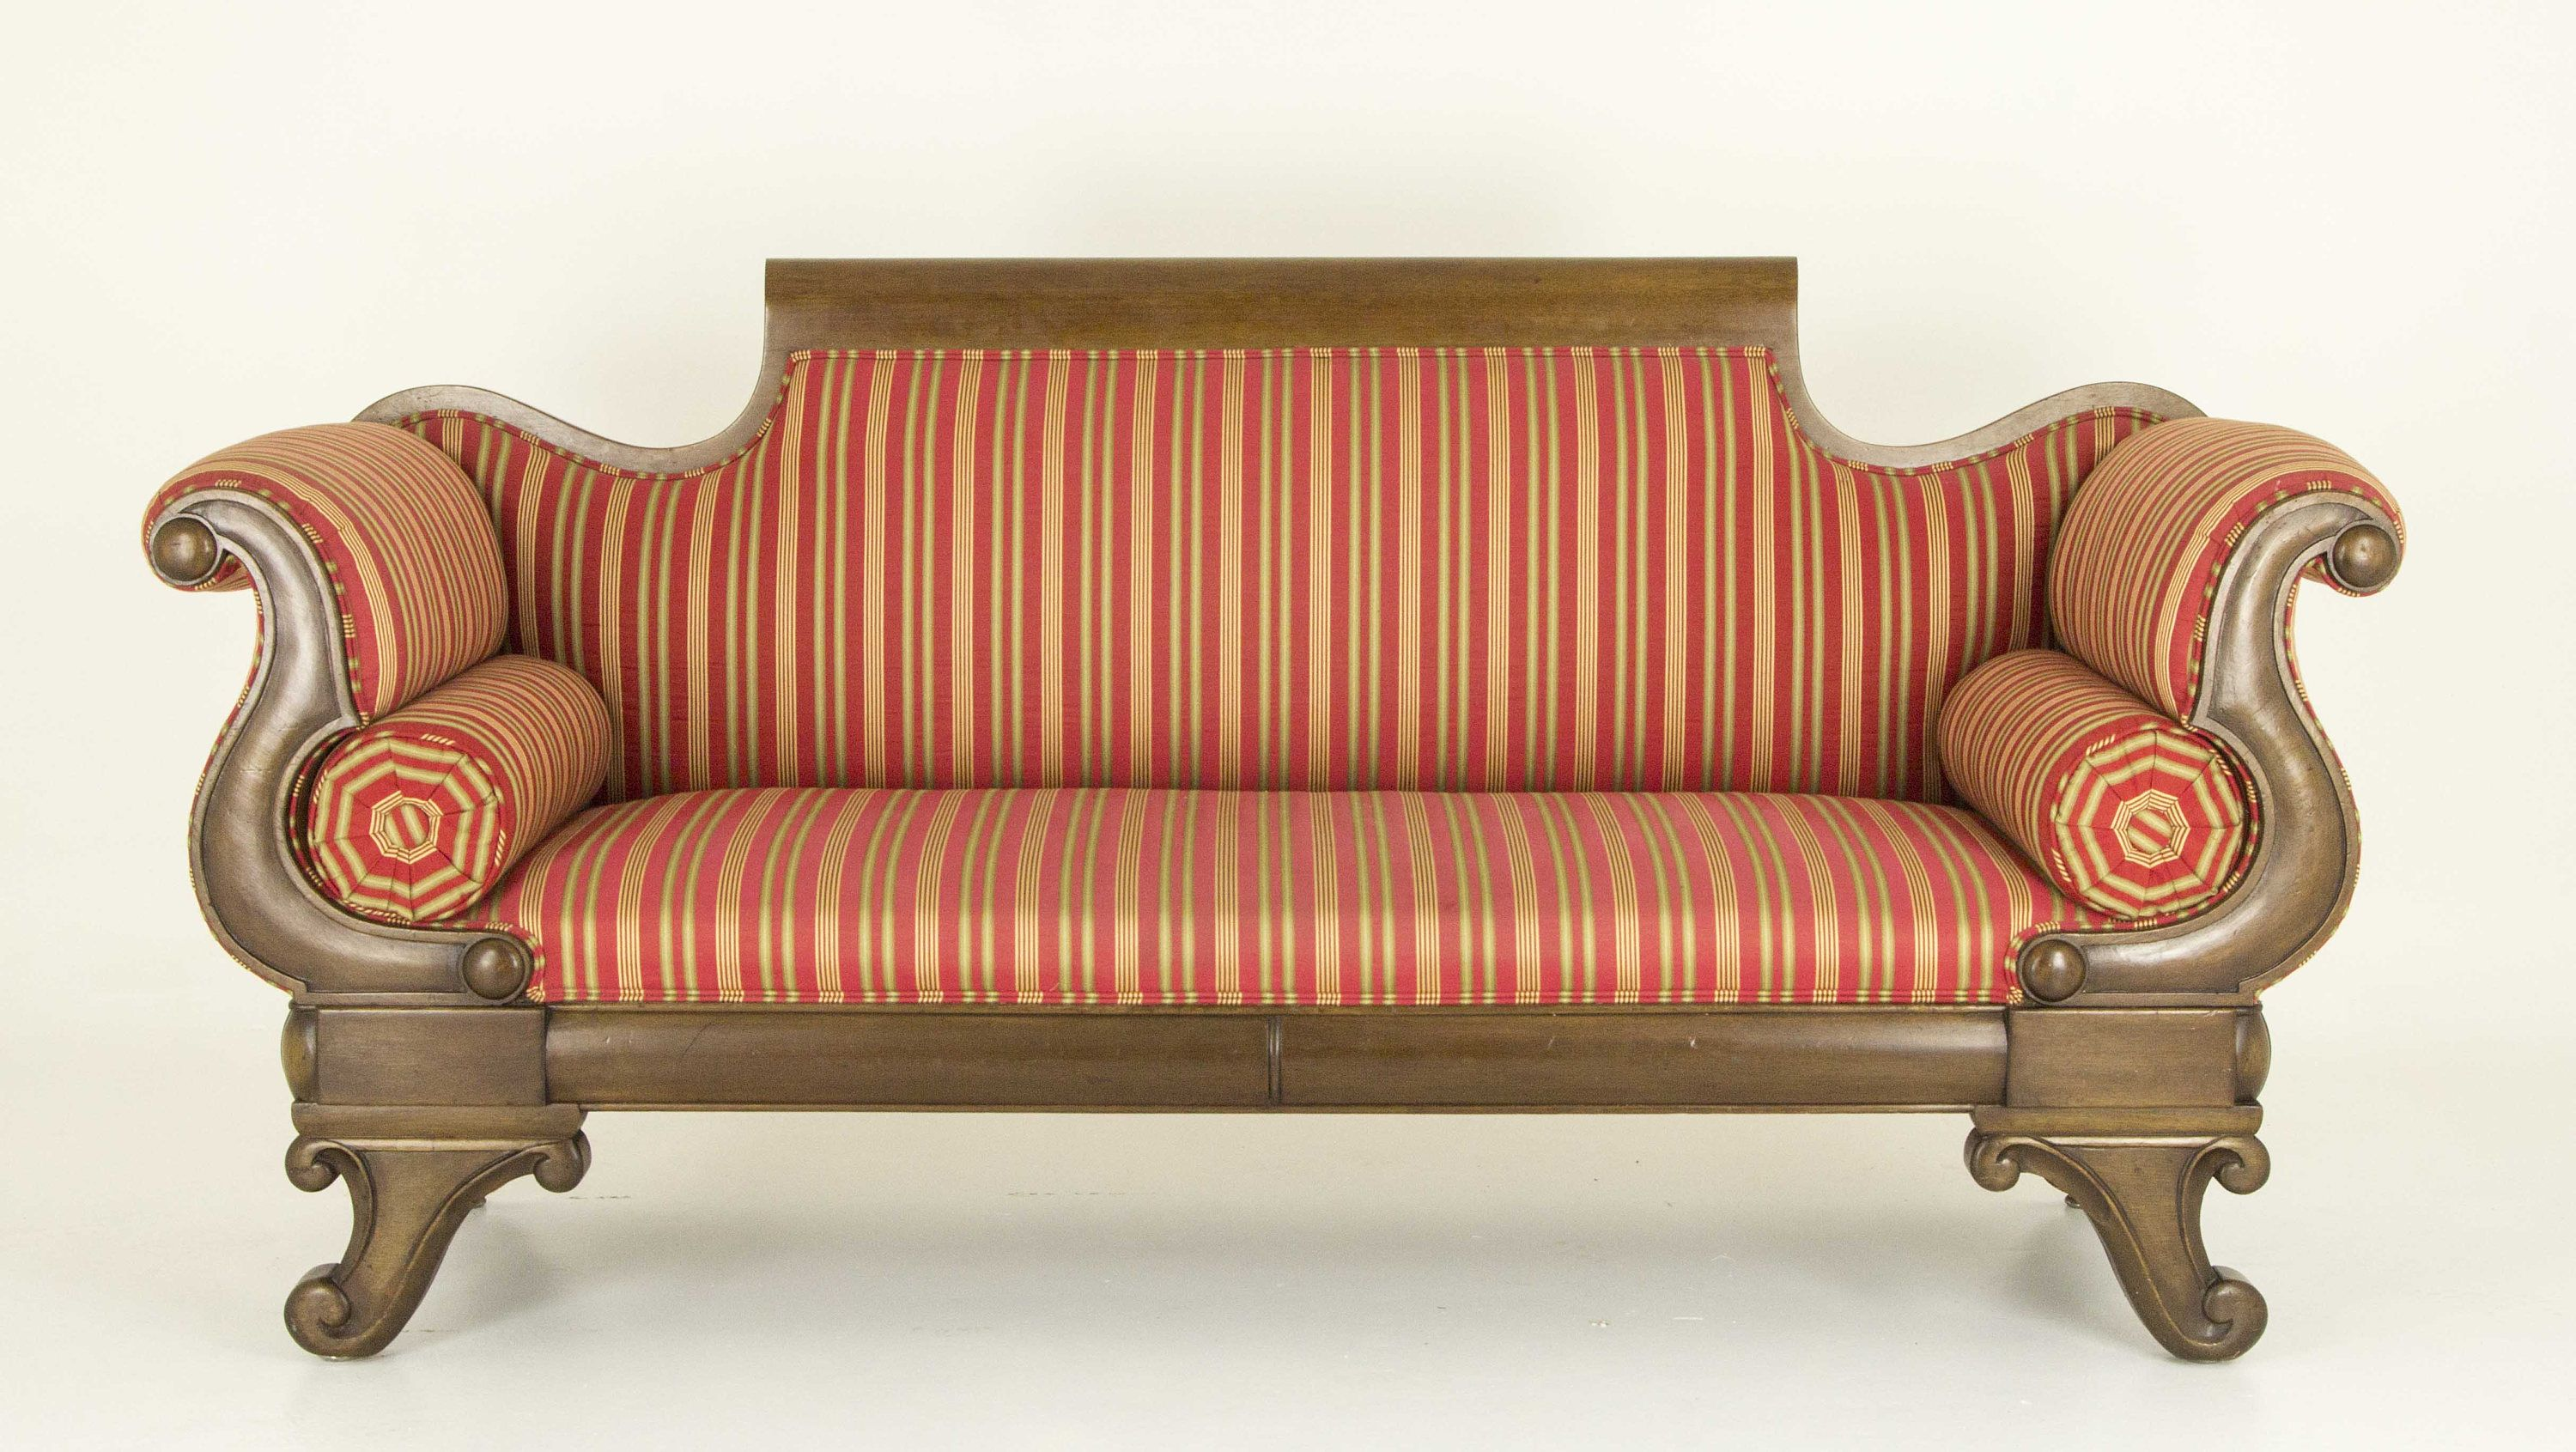 Antique Sofa | Victorian Mahogany Scroll Arm Sofa | Antique Settee | Antique Chaise Lounge | England B707 : settee chaise lounge - Sectionals, Sofas & Couches